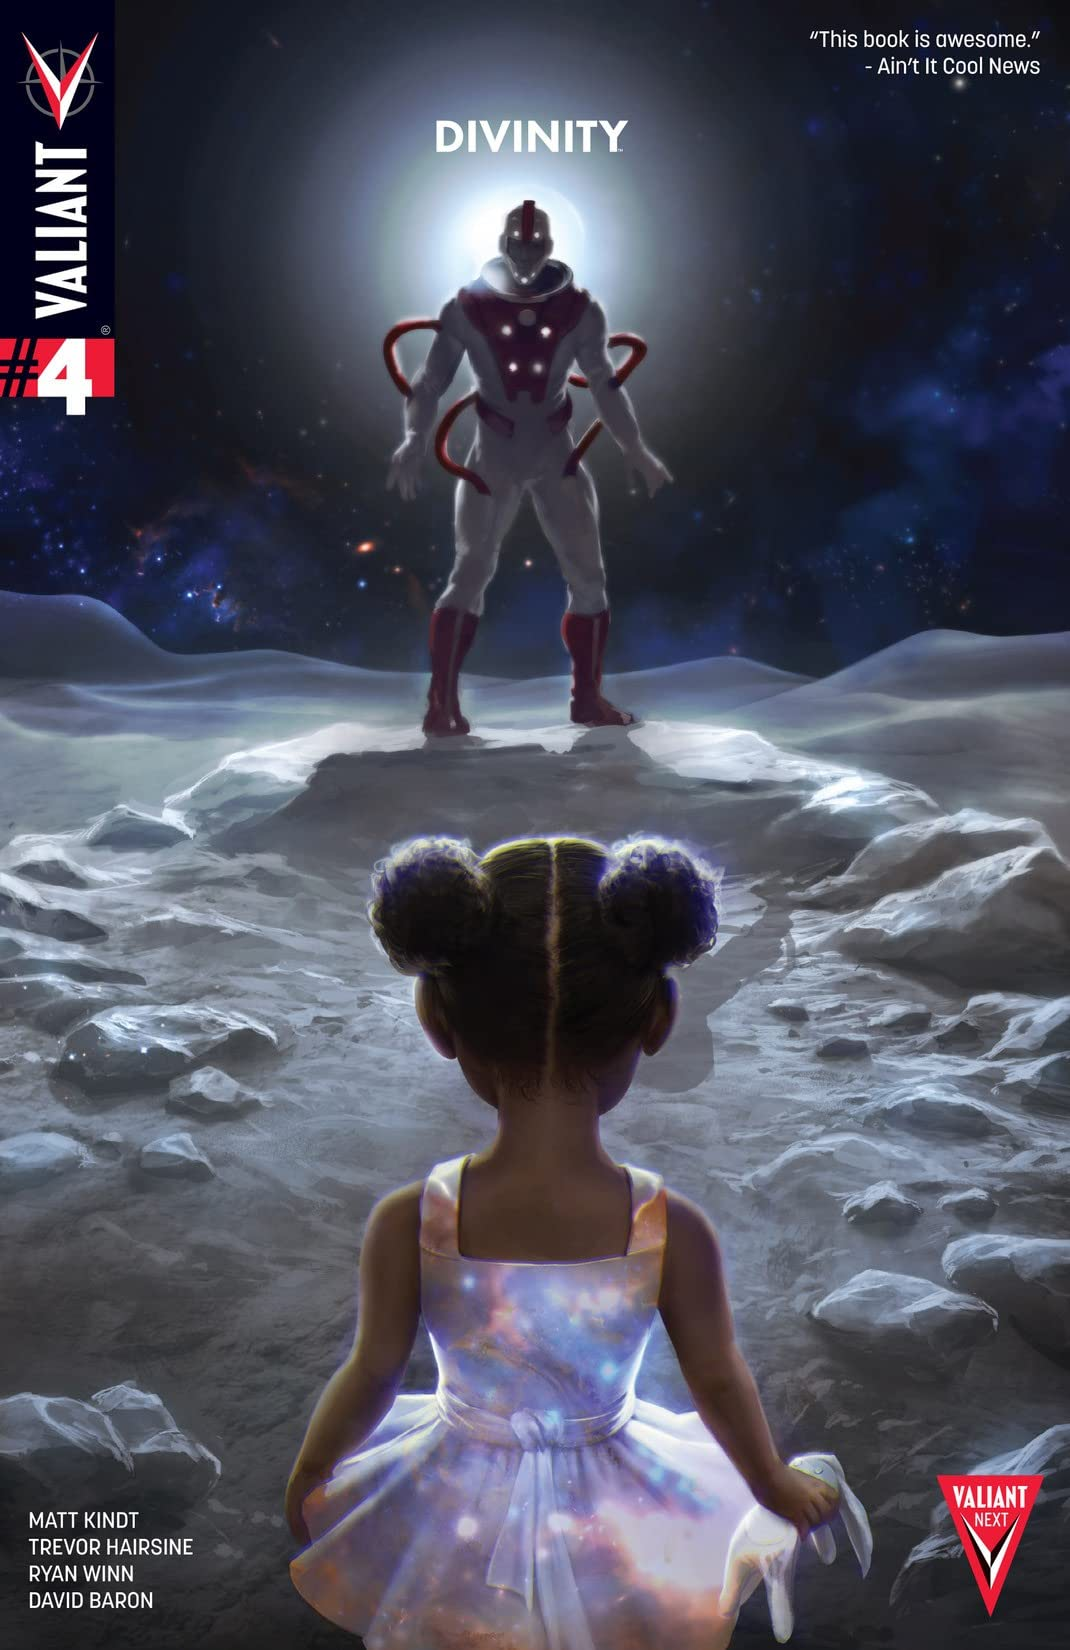 Divinity #4 (of 4): Digital Exclusives Edition